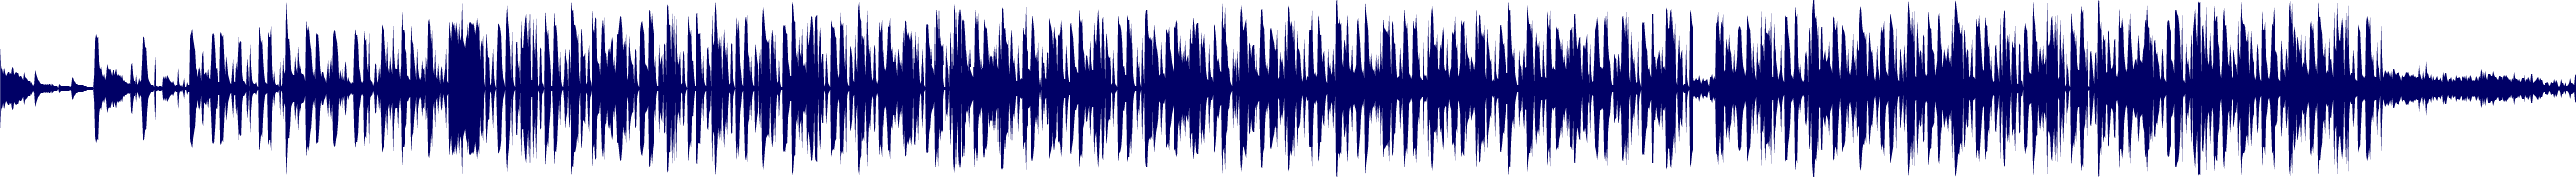 waveform of track #79666